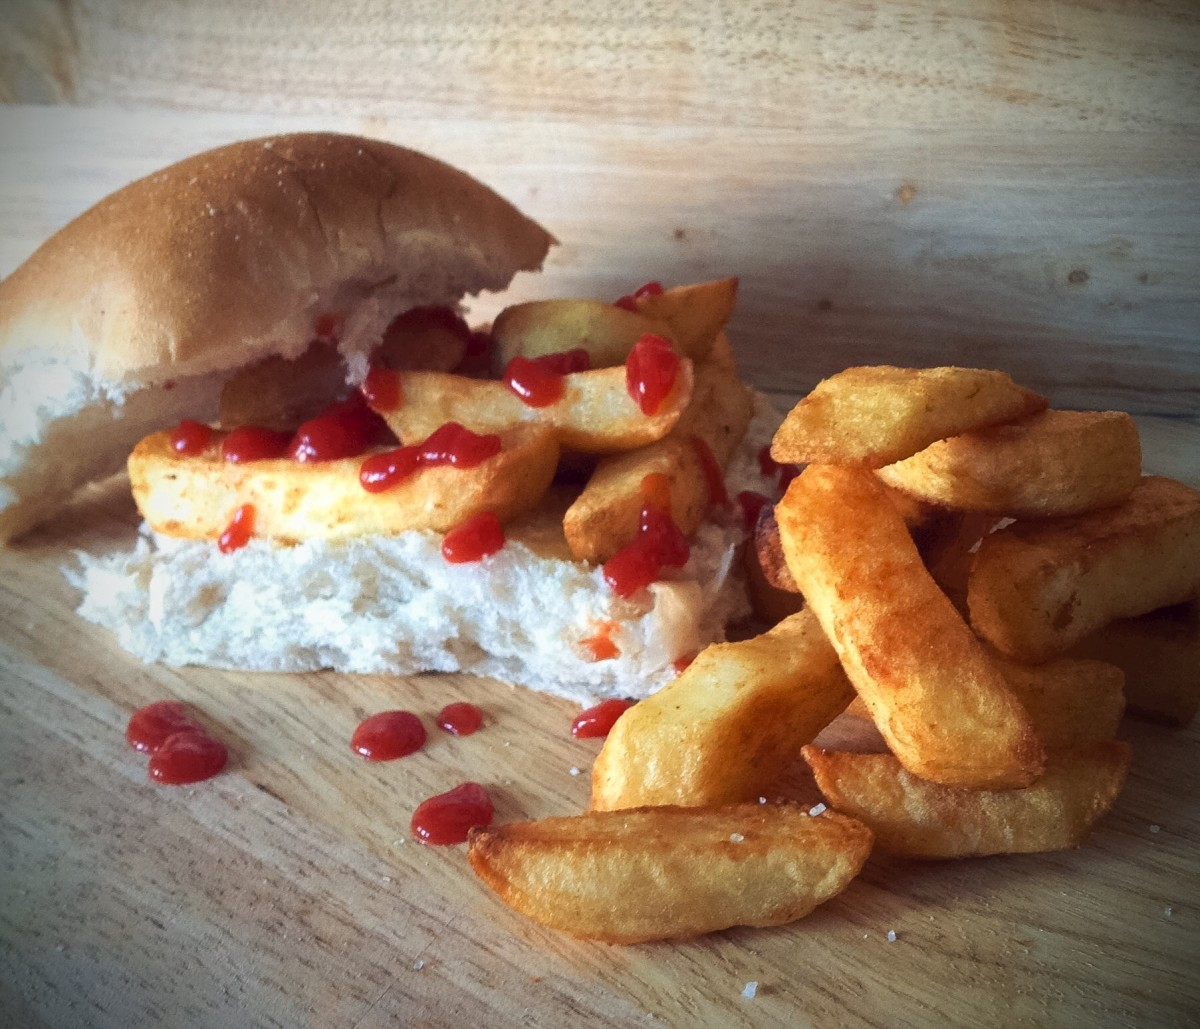 A traditional chip butty with white bread, tomato sauce, and extra chips